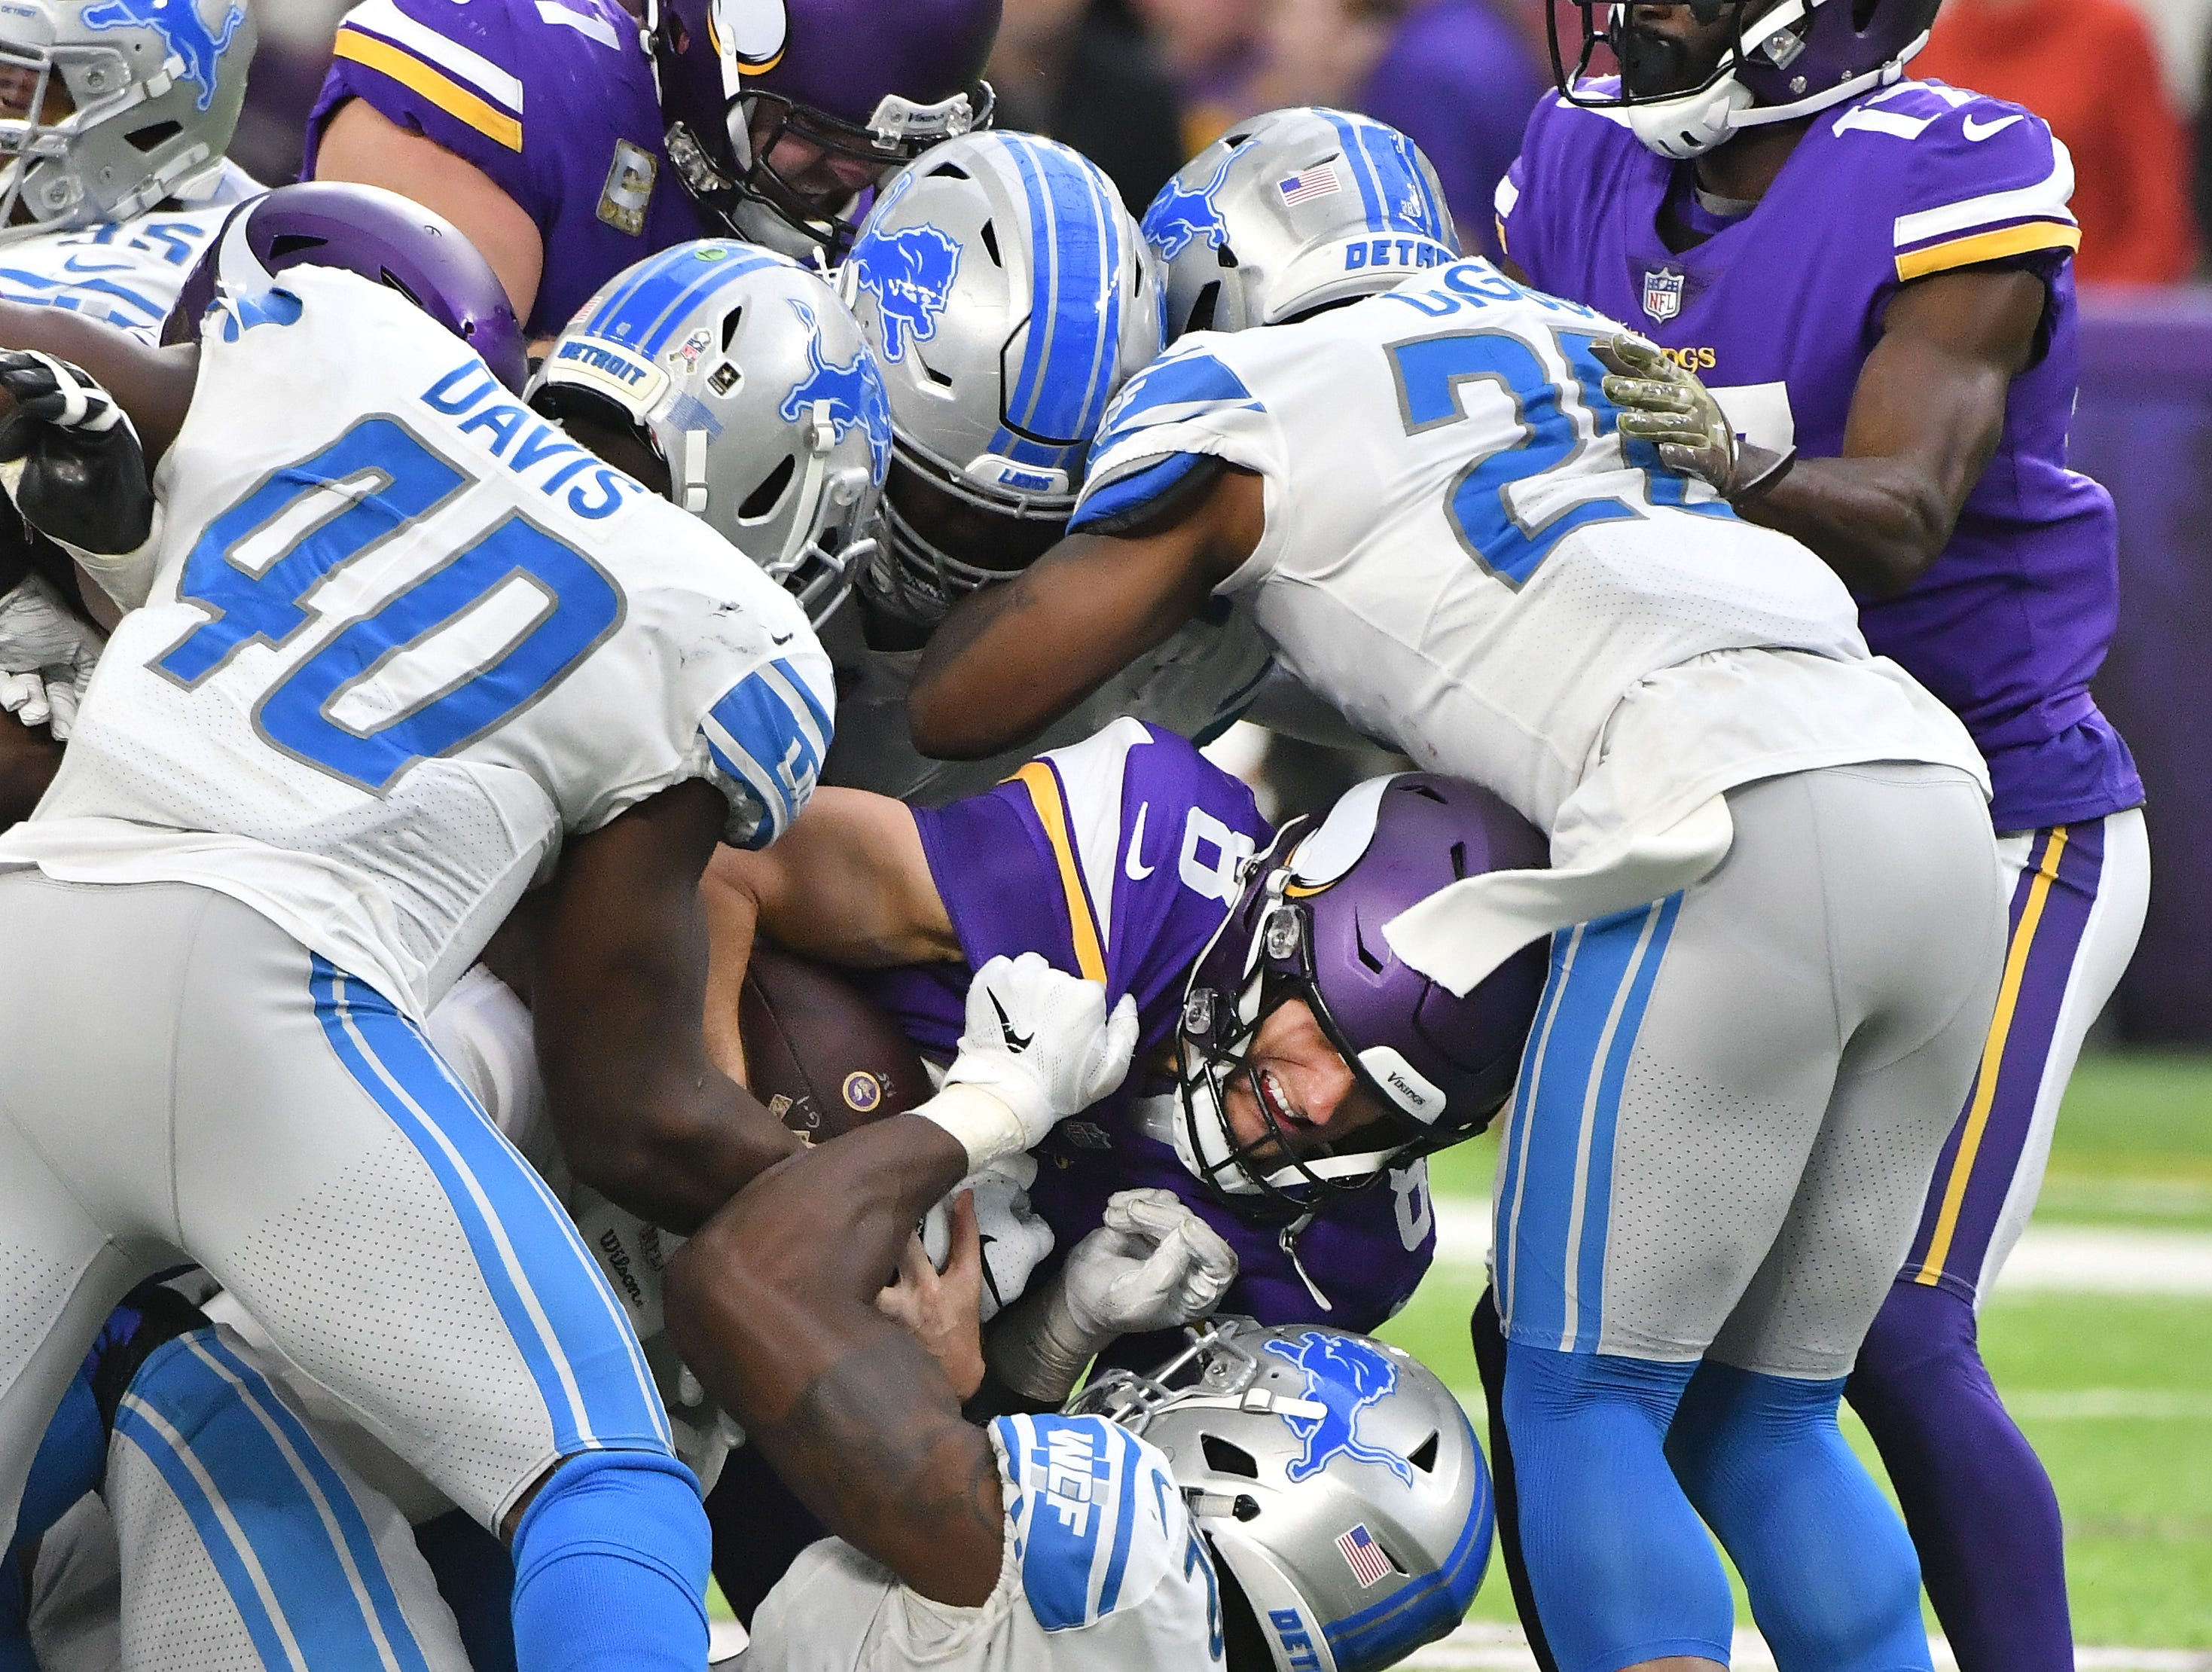 The Lions defense brings down Vikings quarterback Kirk Cousins but after he picks up the yard for a first down on a quarterback sneak in the third quarter.